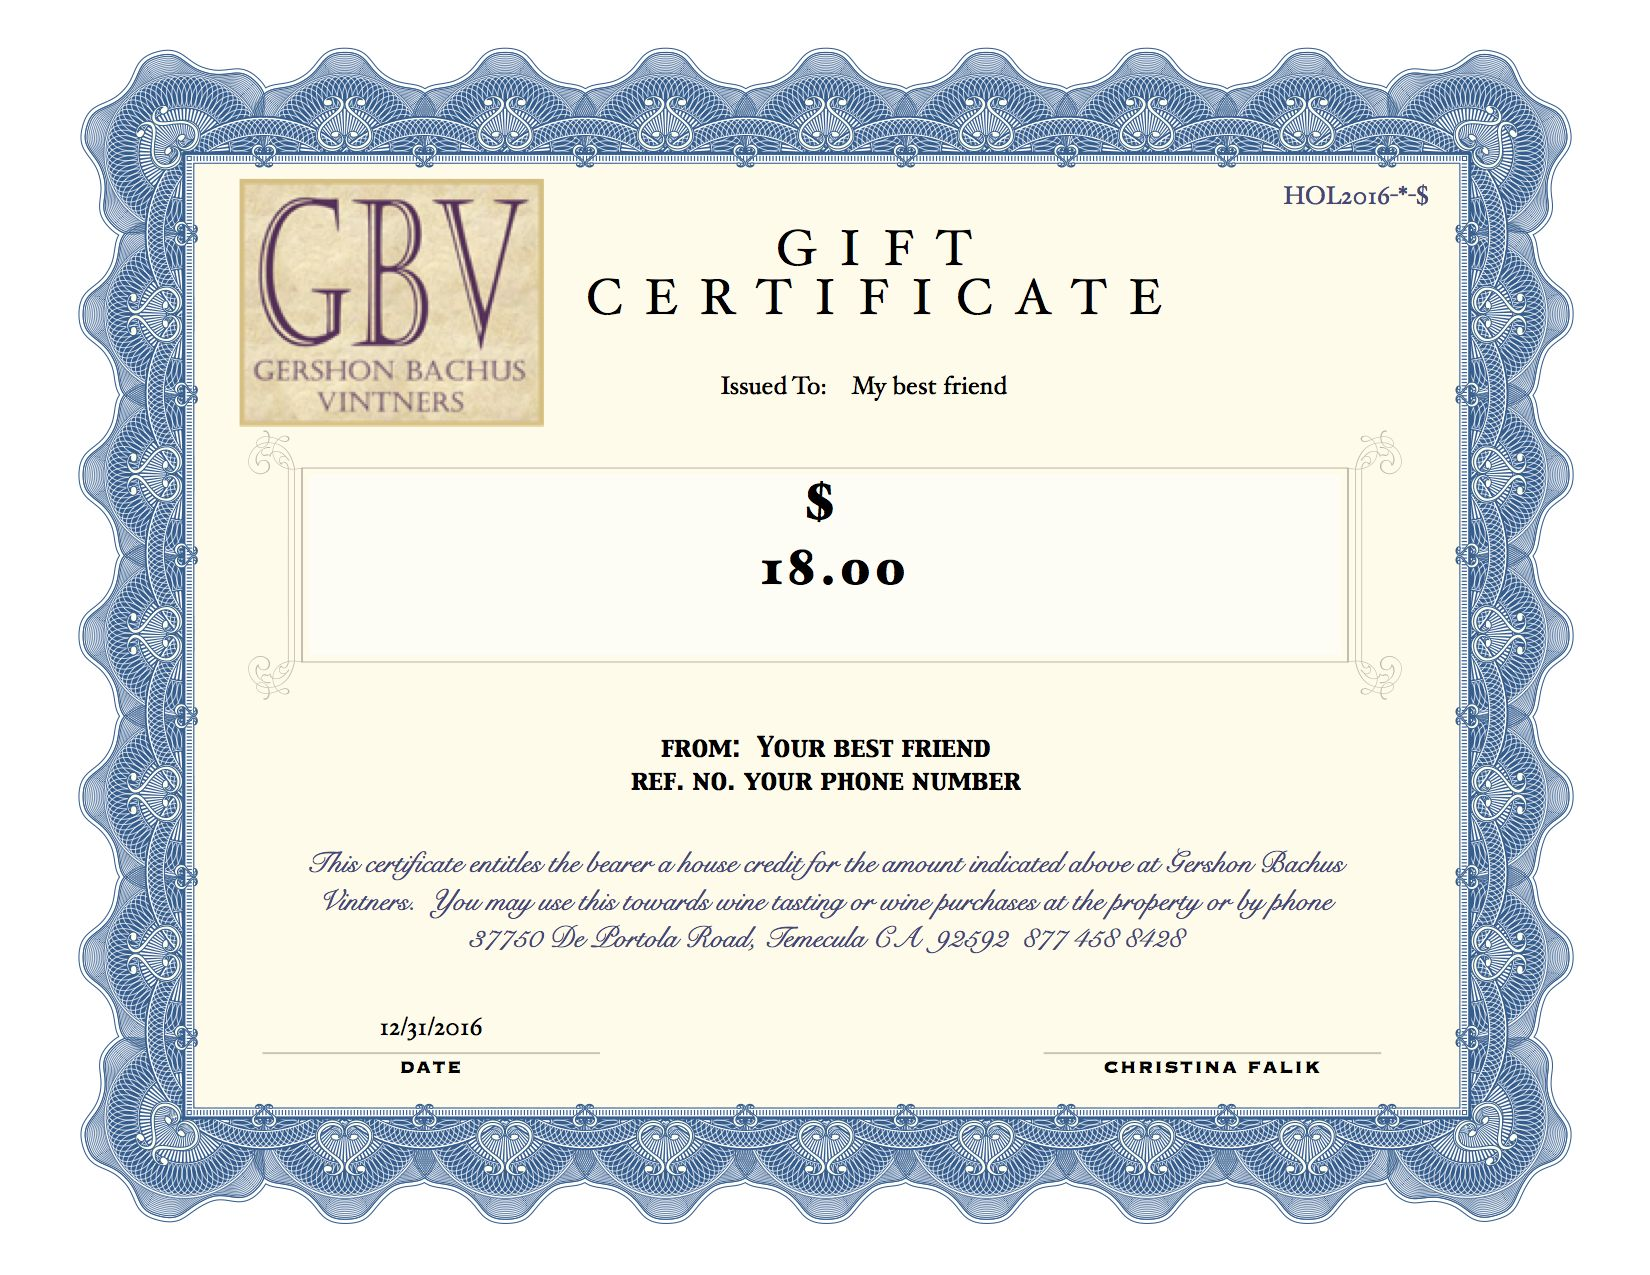 GIFT CERTIFICATE 2021